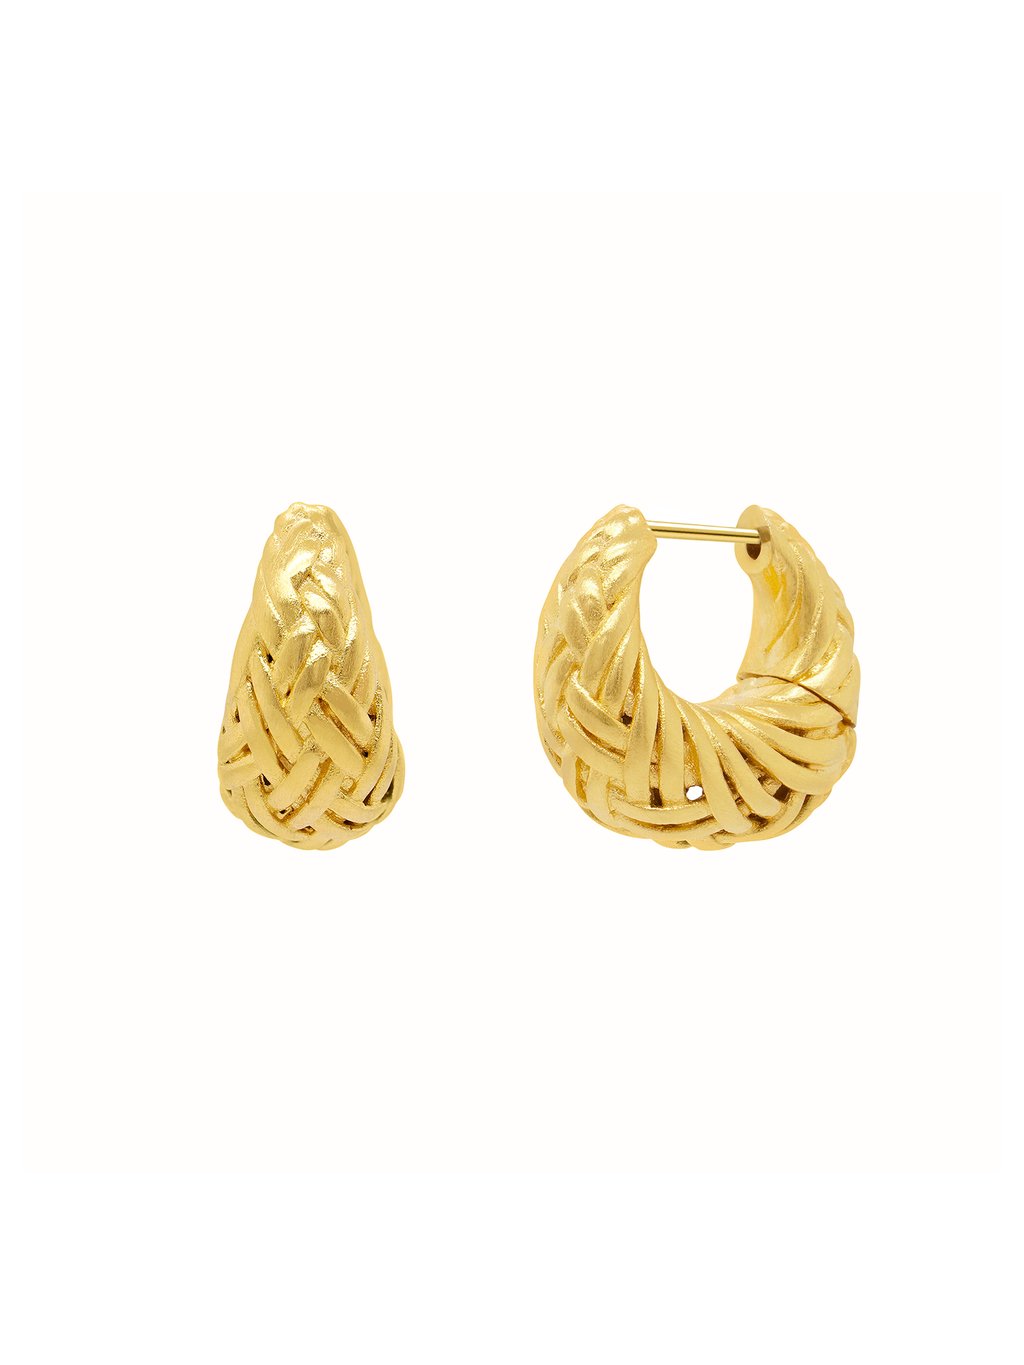 Dean Davidson Bali Weave Huggie Earrings- Gold